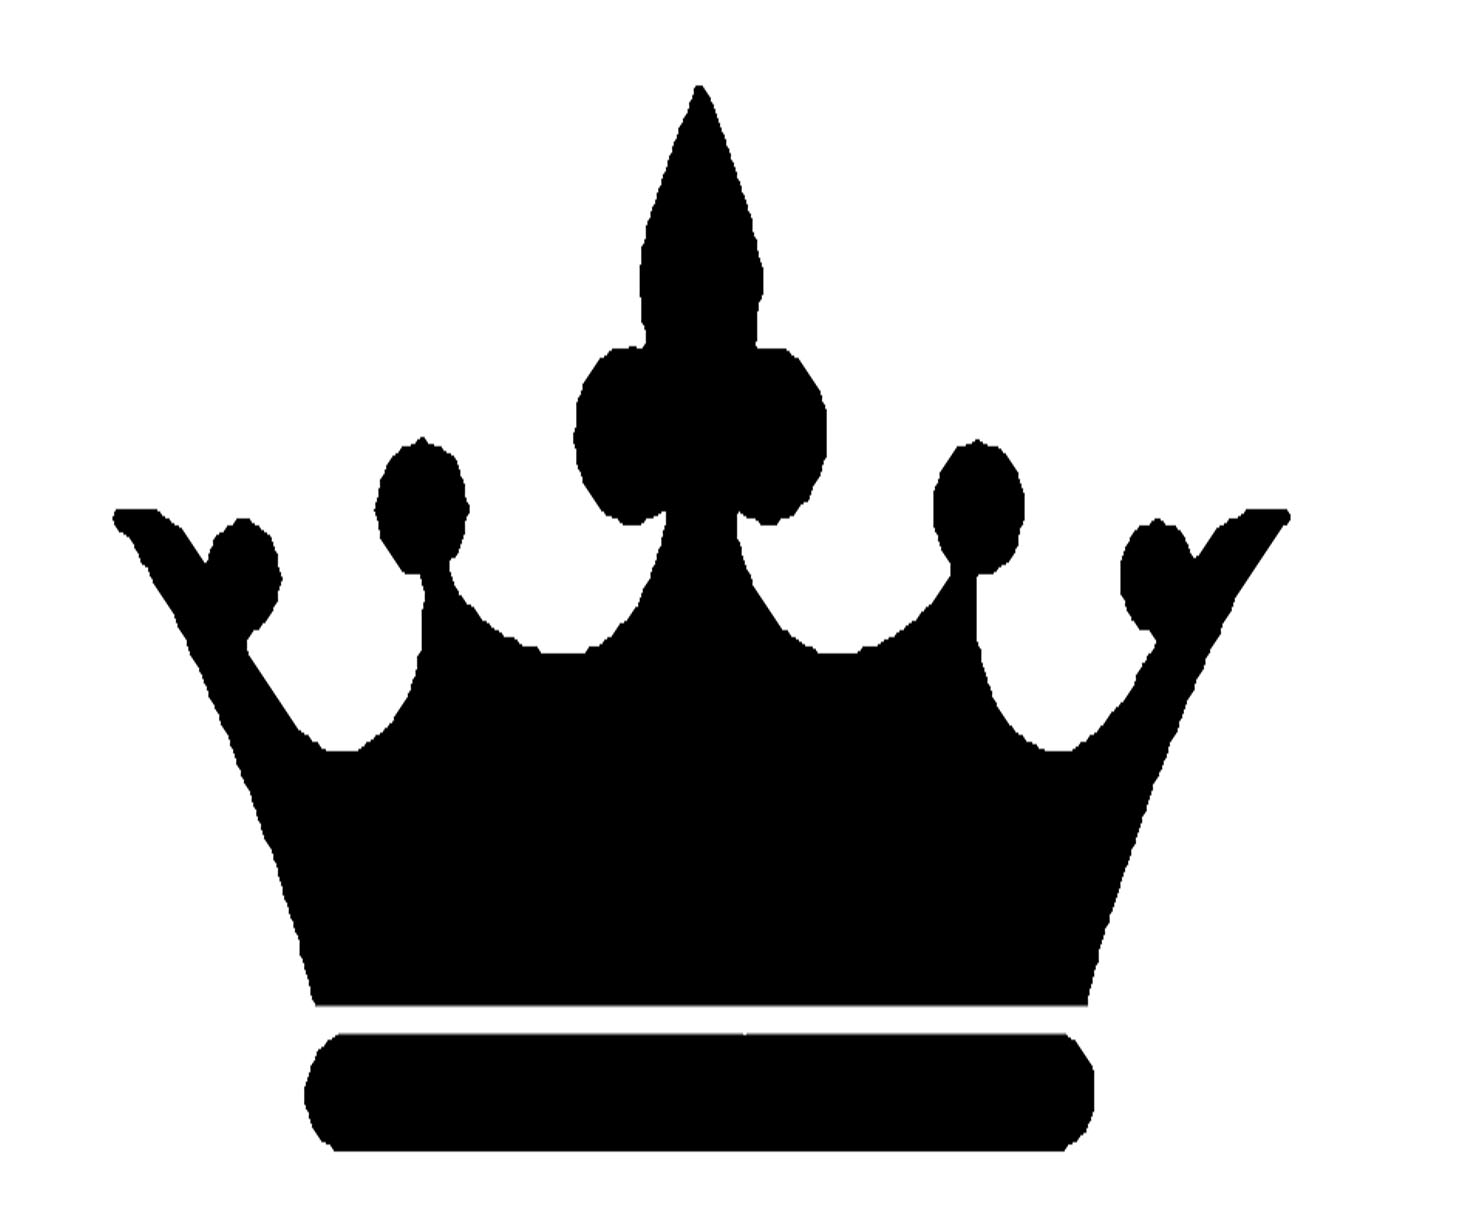 12 Simple Crown Clipart Free Cliparts Th-12 Simple Crown Clipart Free Cliparts That You Can Download To You-2